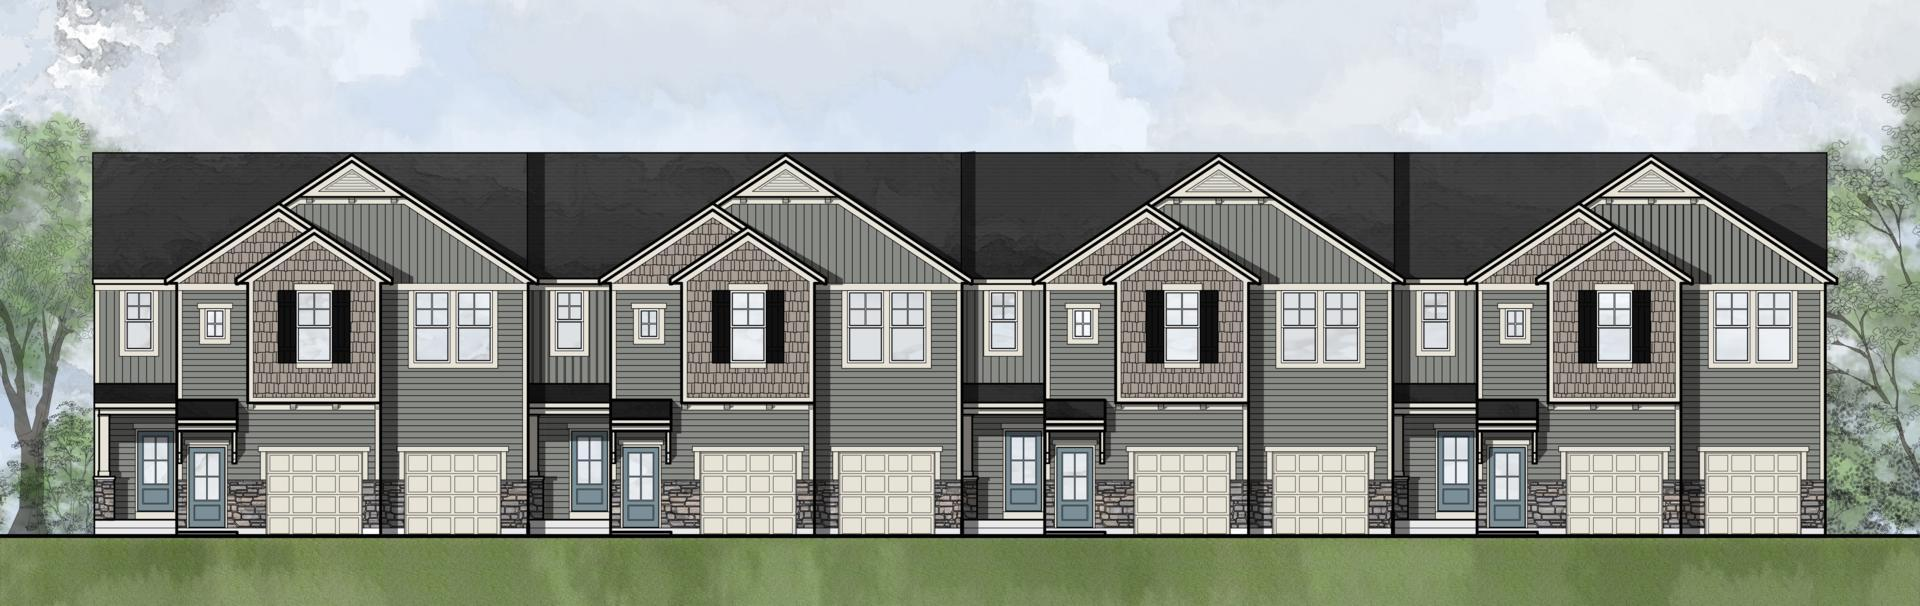 Exterior featured in the Tribeca II By Drees Homes in Cincinnati, KY